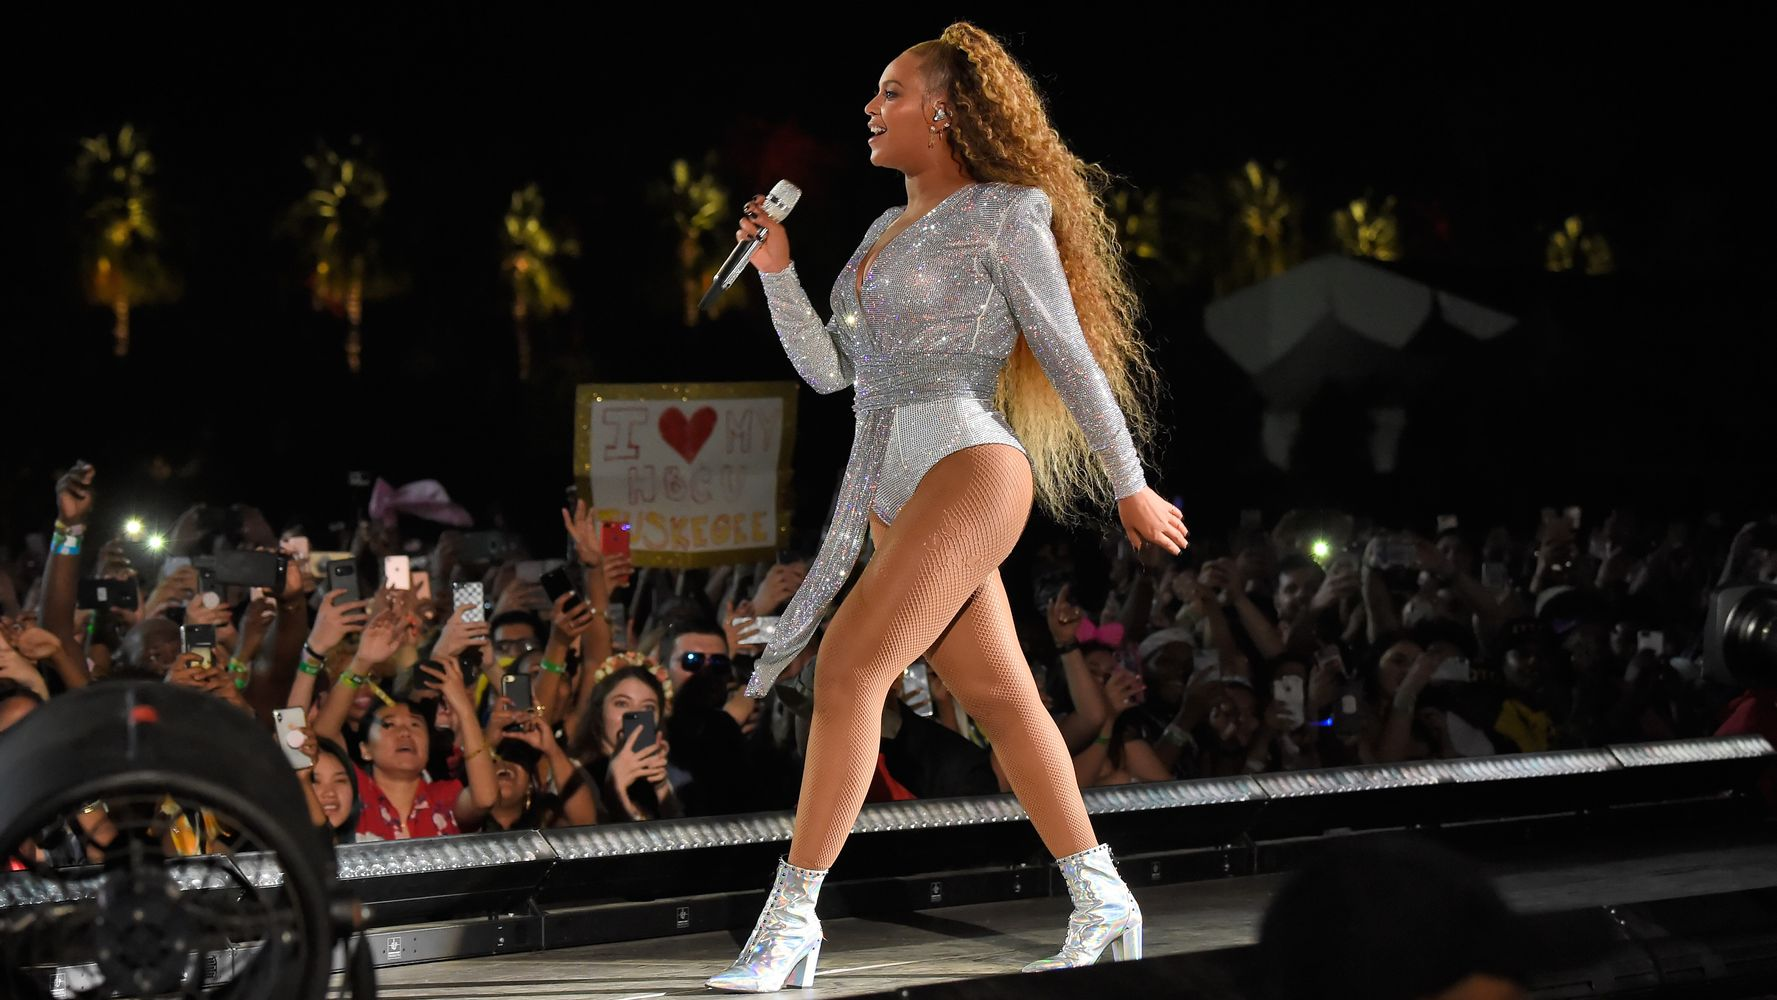 Beyoncé's 22-Day Diet Plan 'Could Be Dangerous', Warn Experts